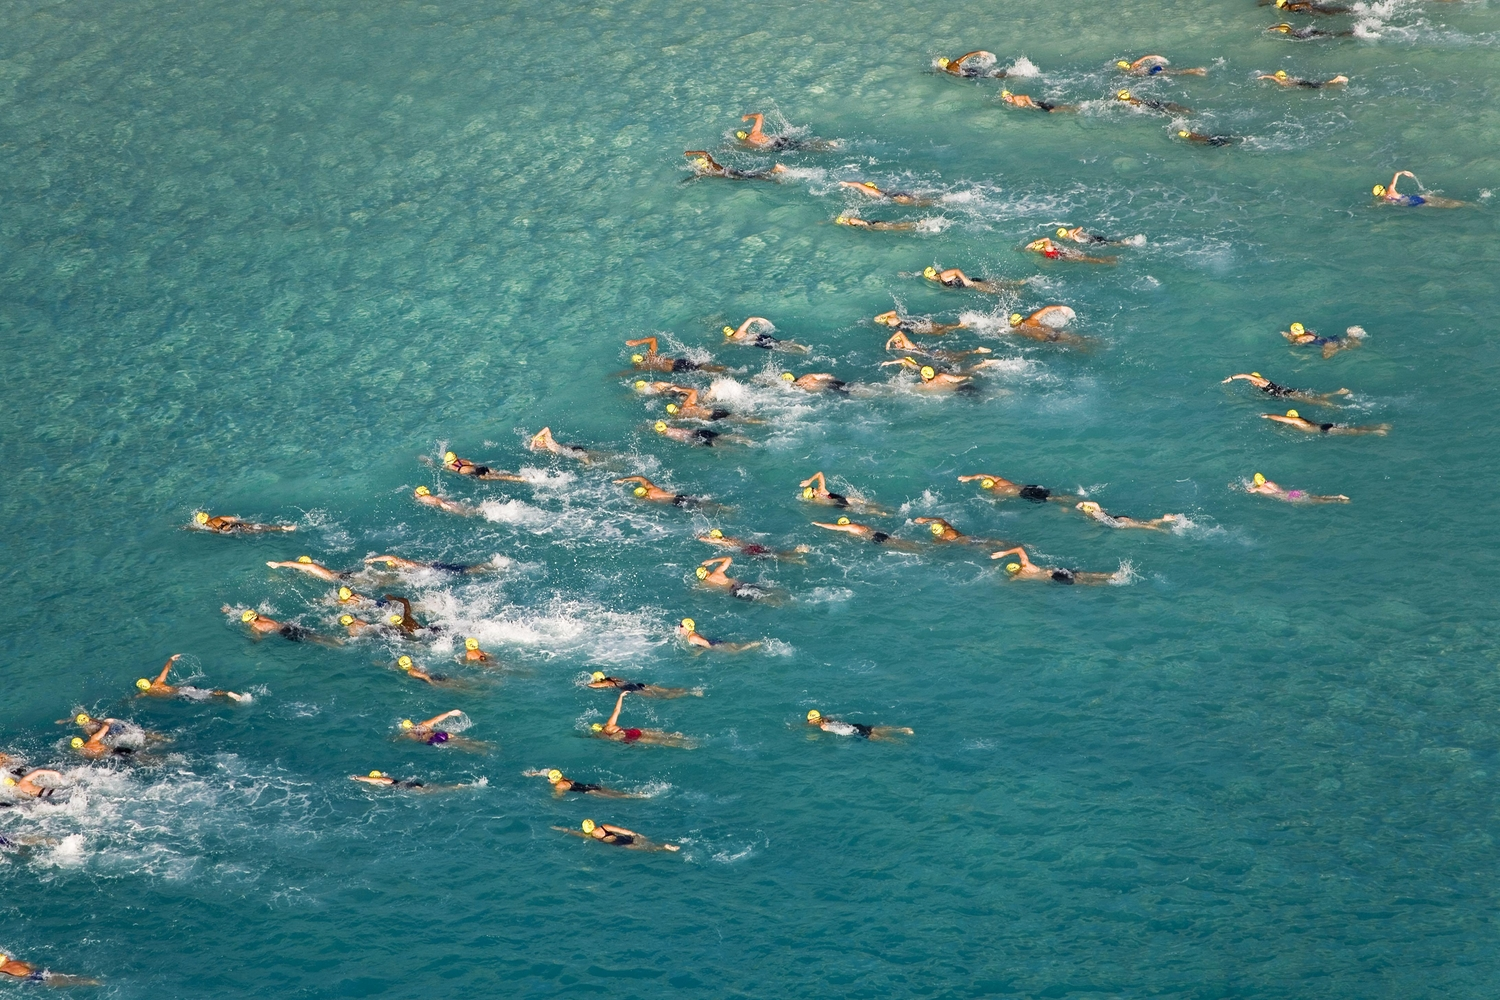 Large open water swimming race